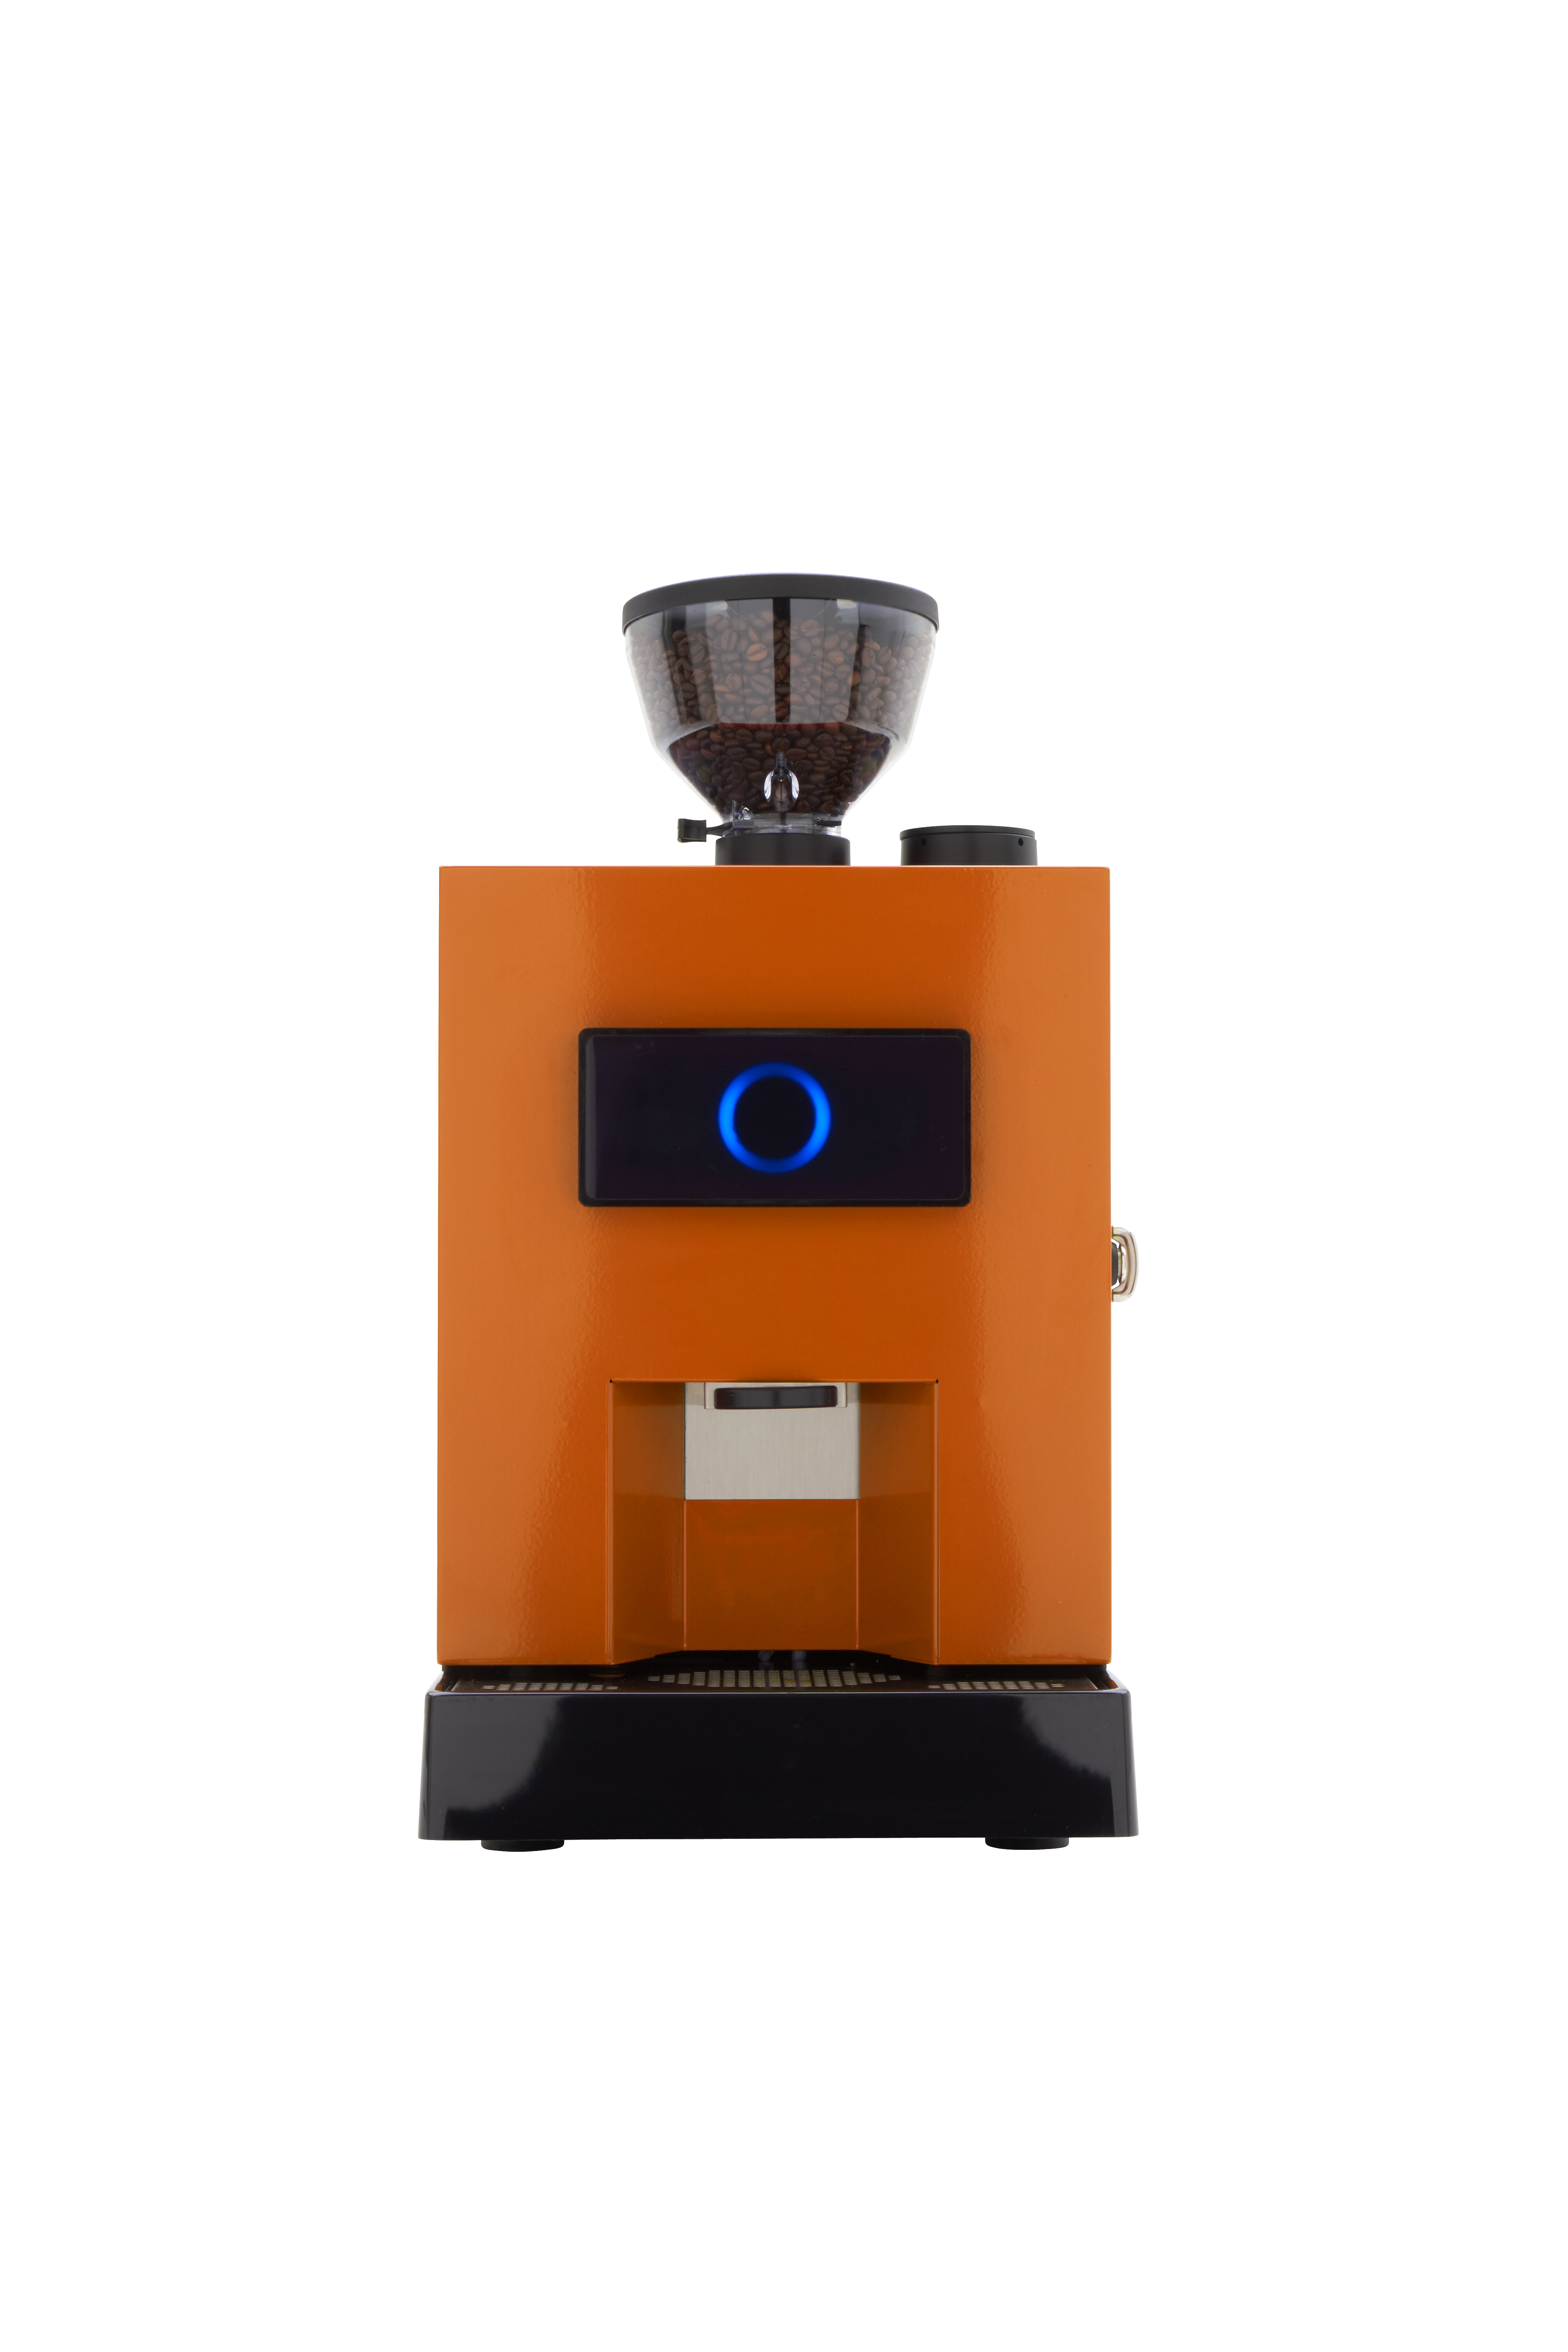 Kaffe Compagniet AS HLF 1700_front_orang